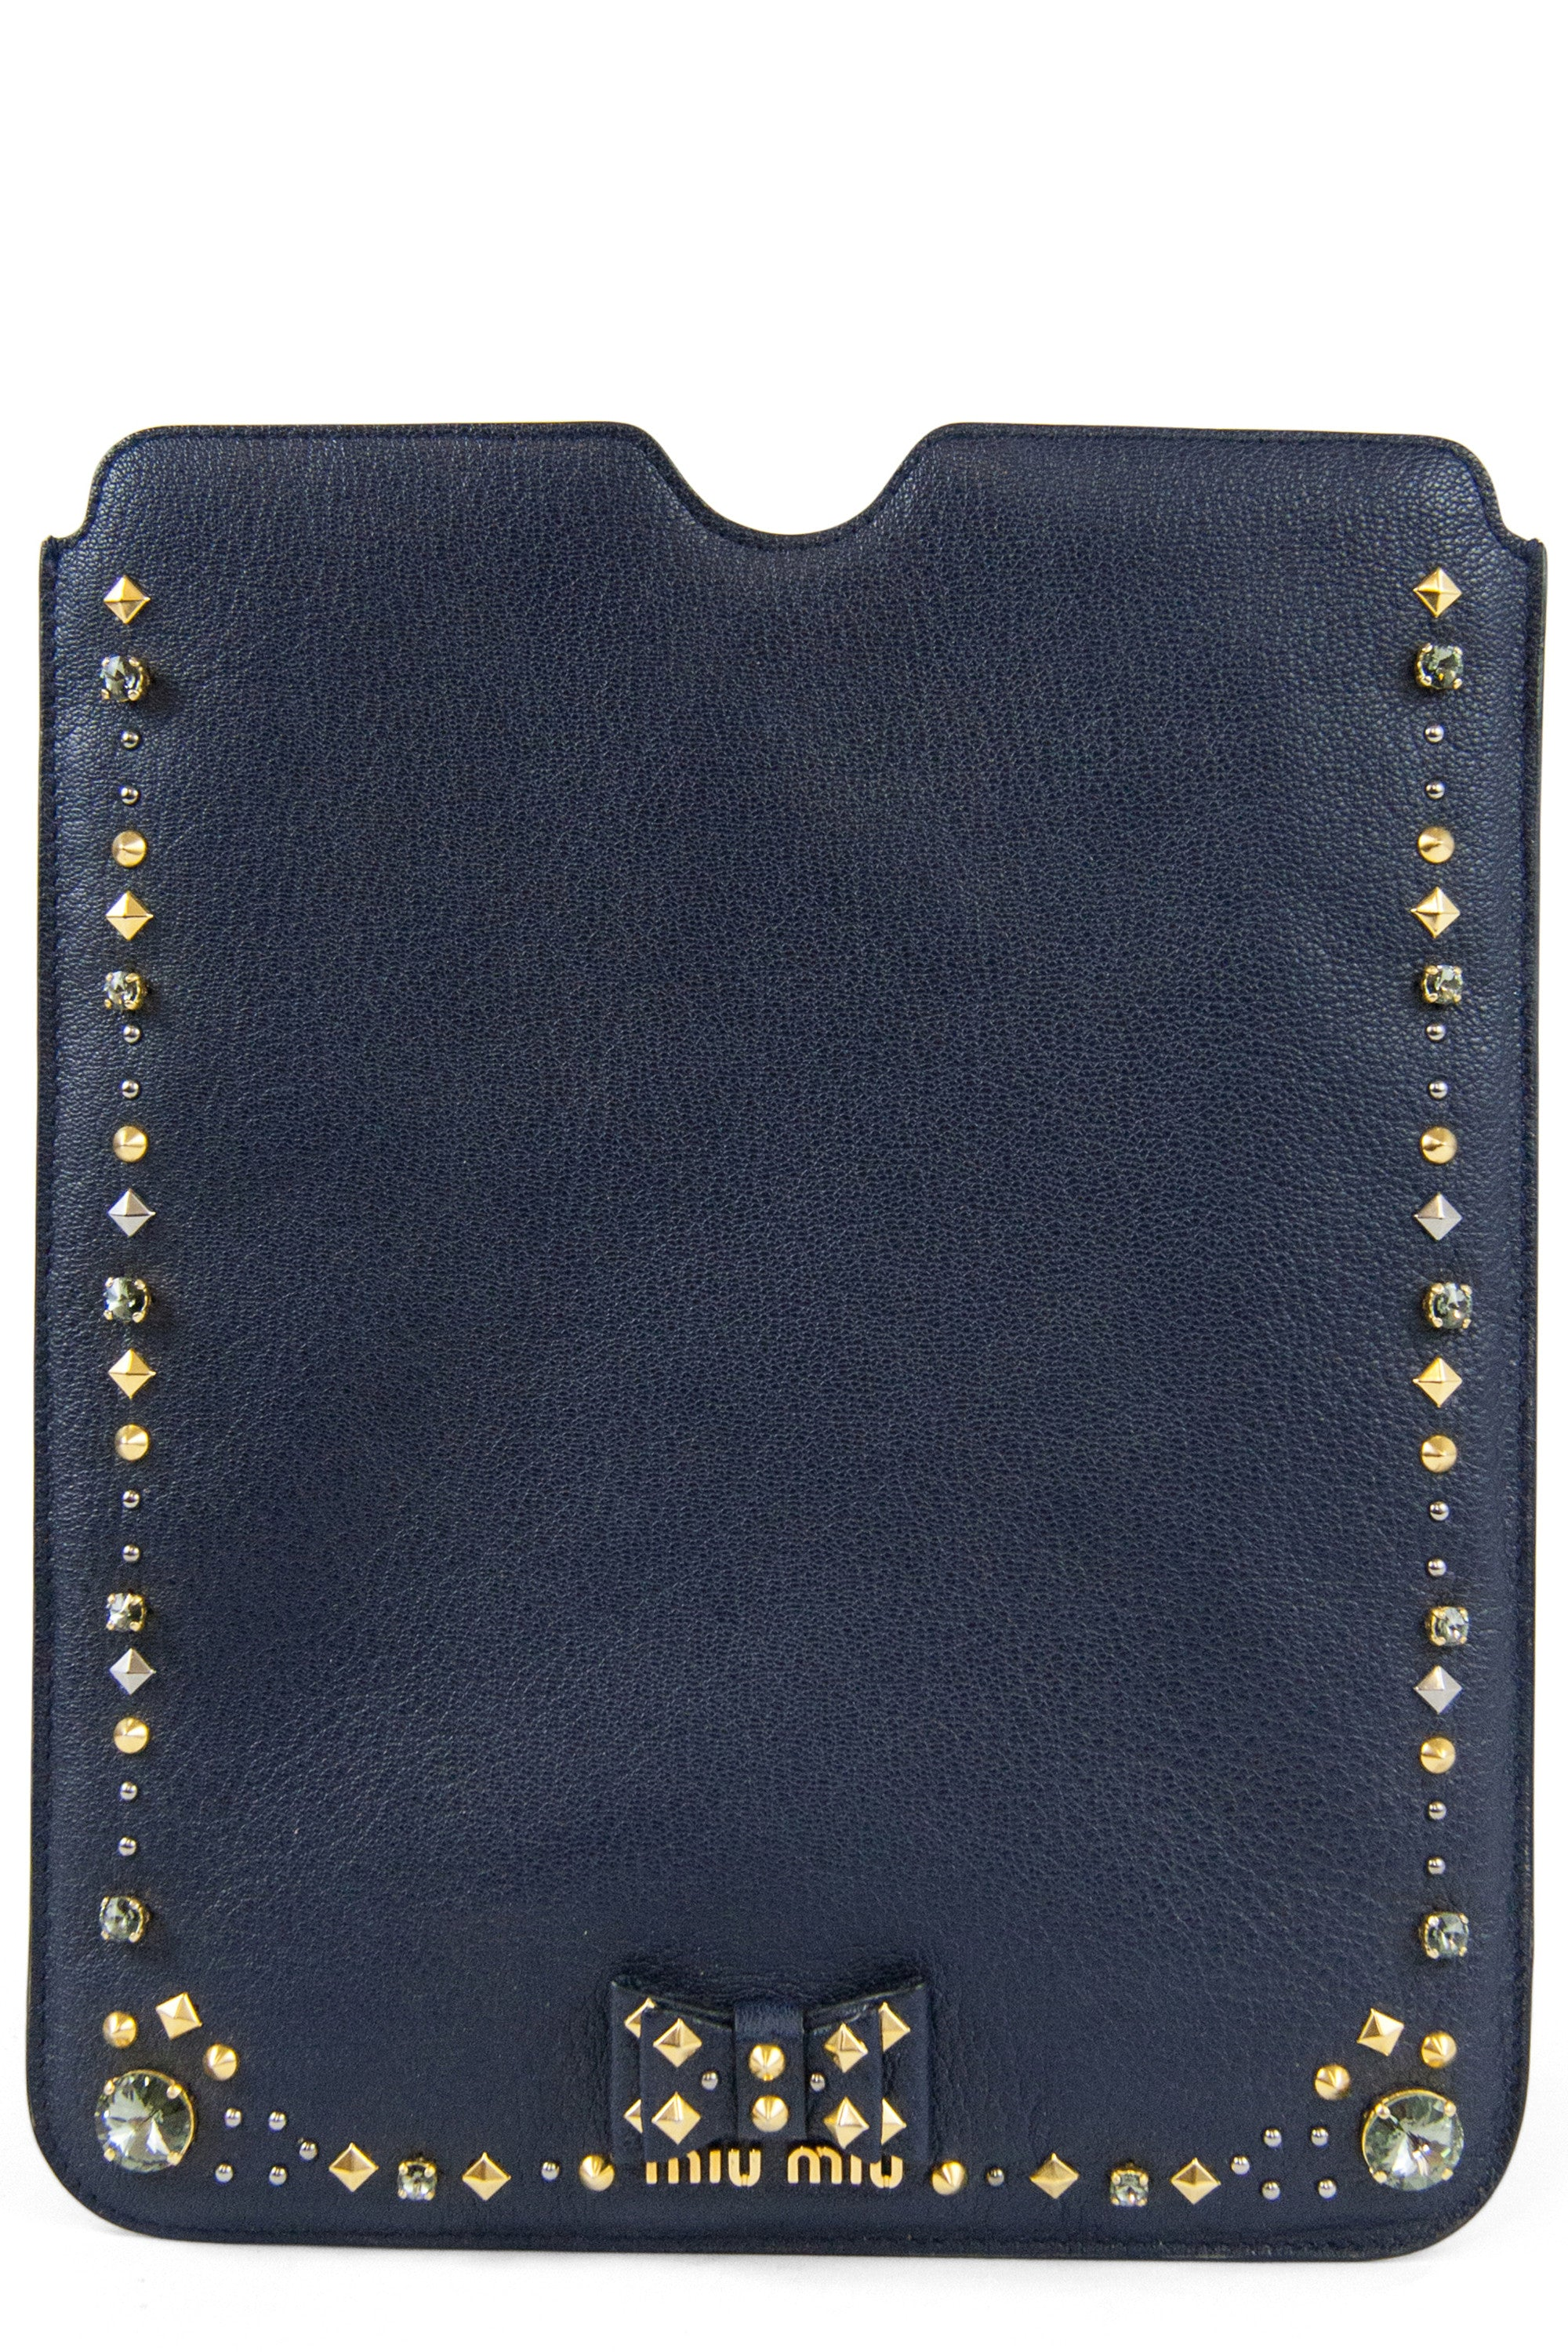 MIU MIU IPad Case